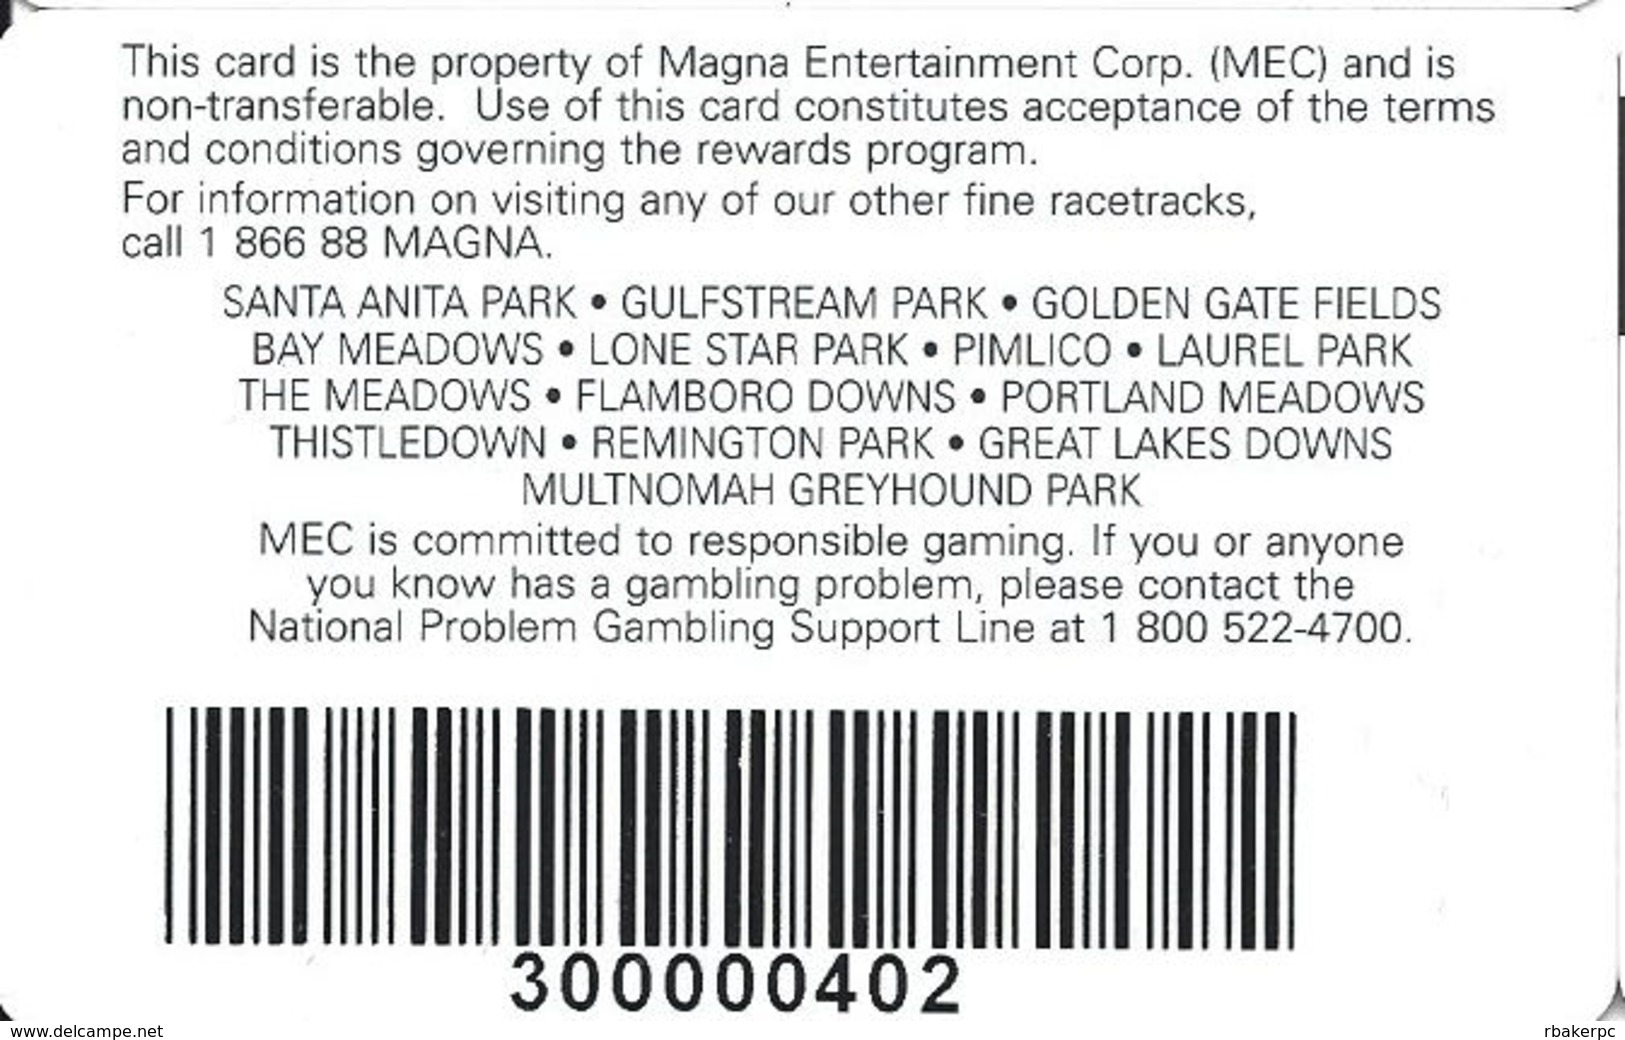 Great Lakes Downs - Muskegon, MI USA - Player Rewards Card - Casino Cards